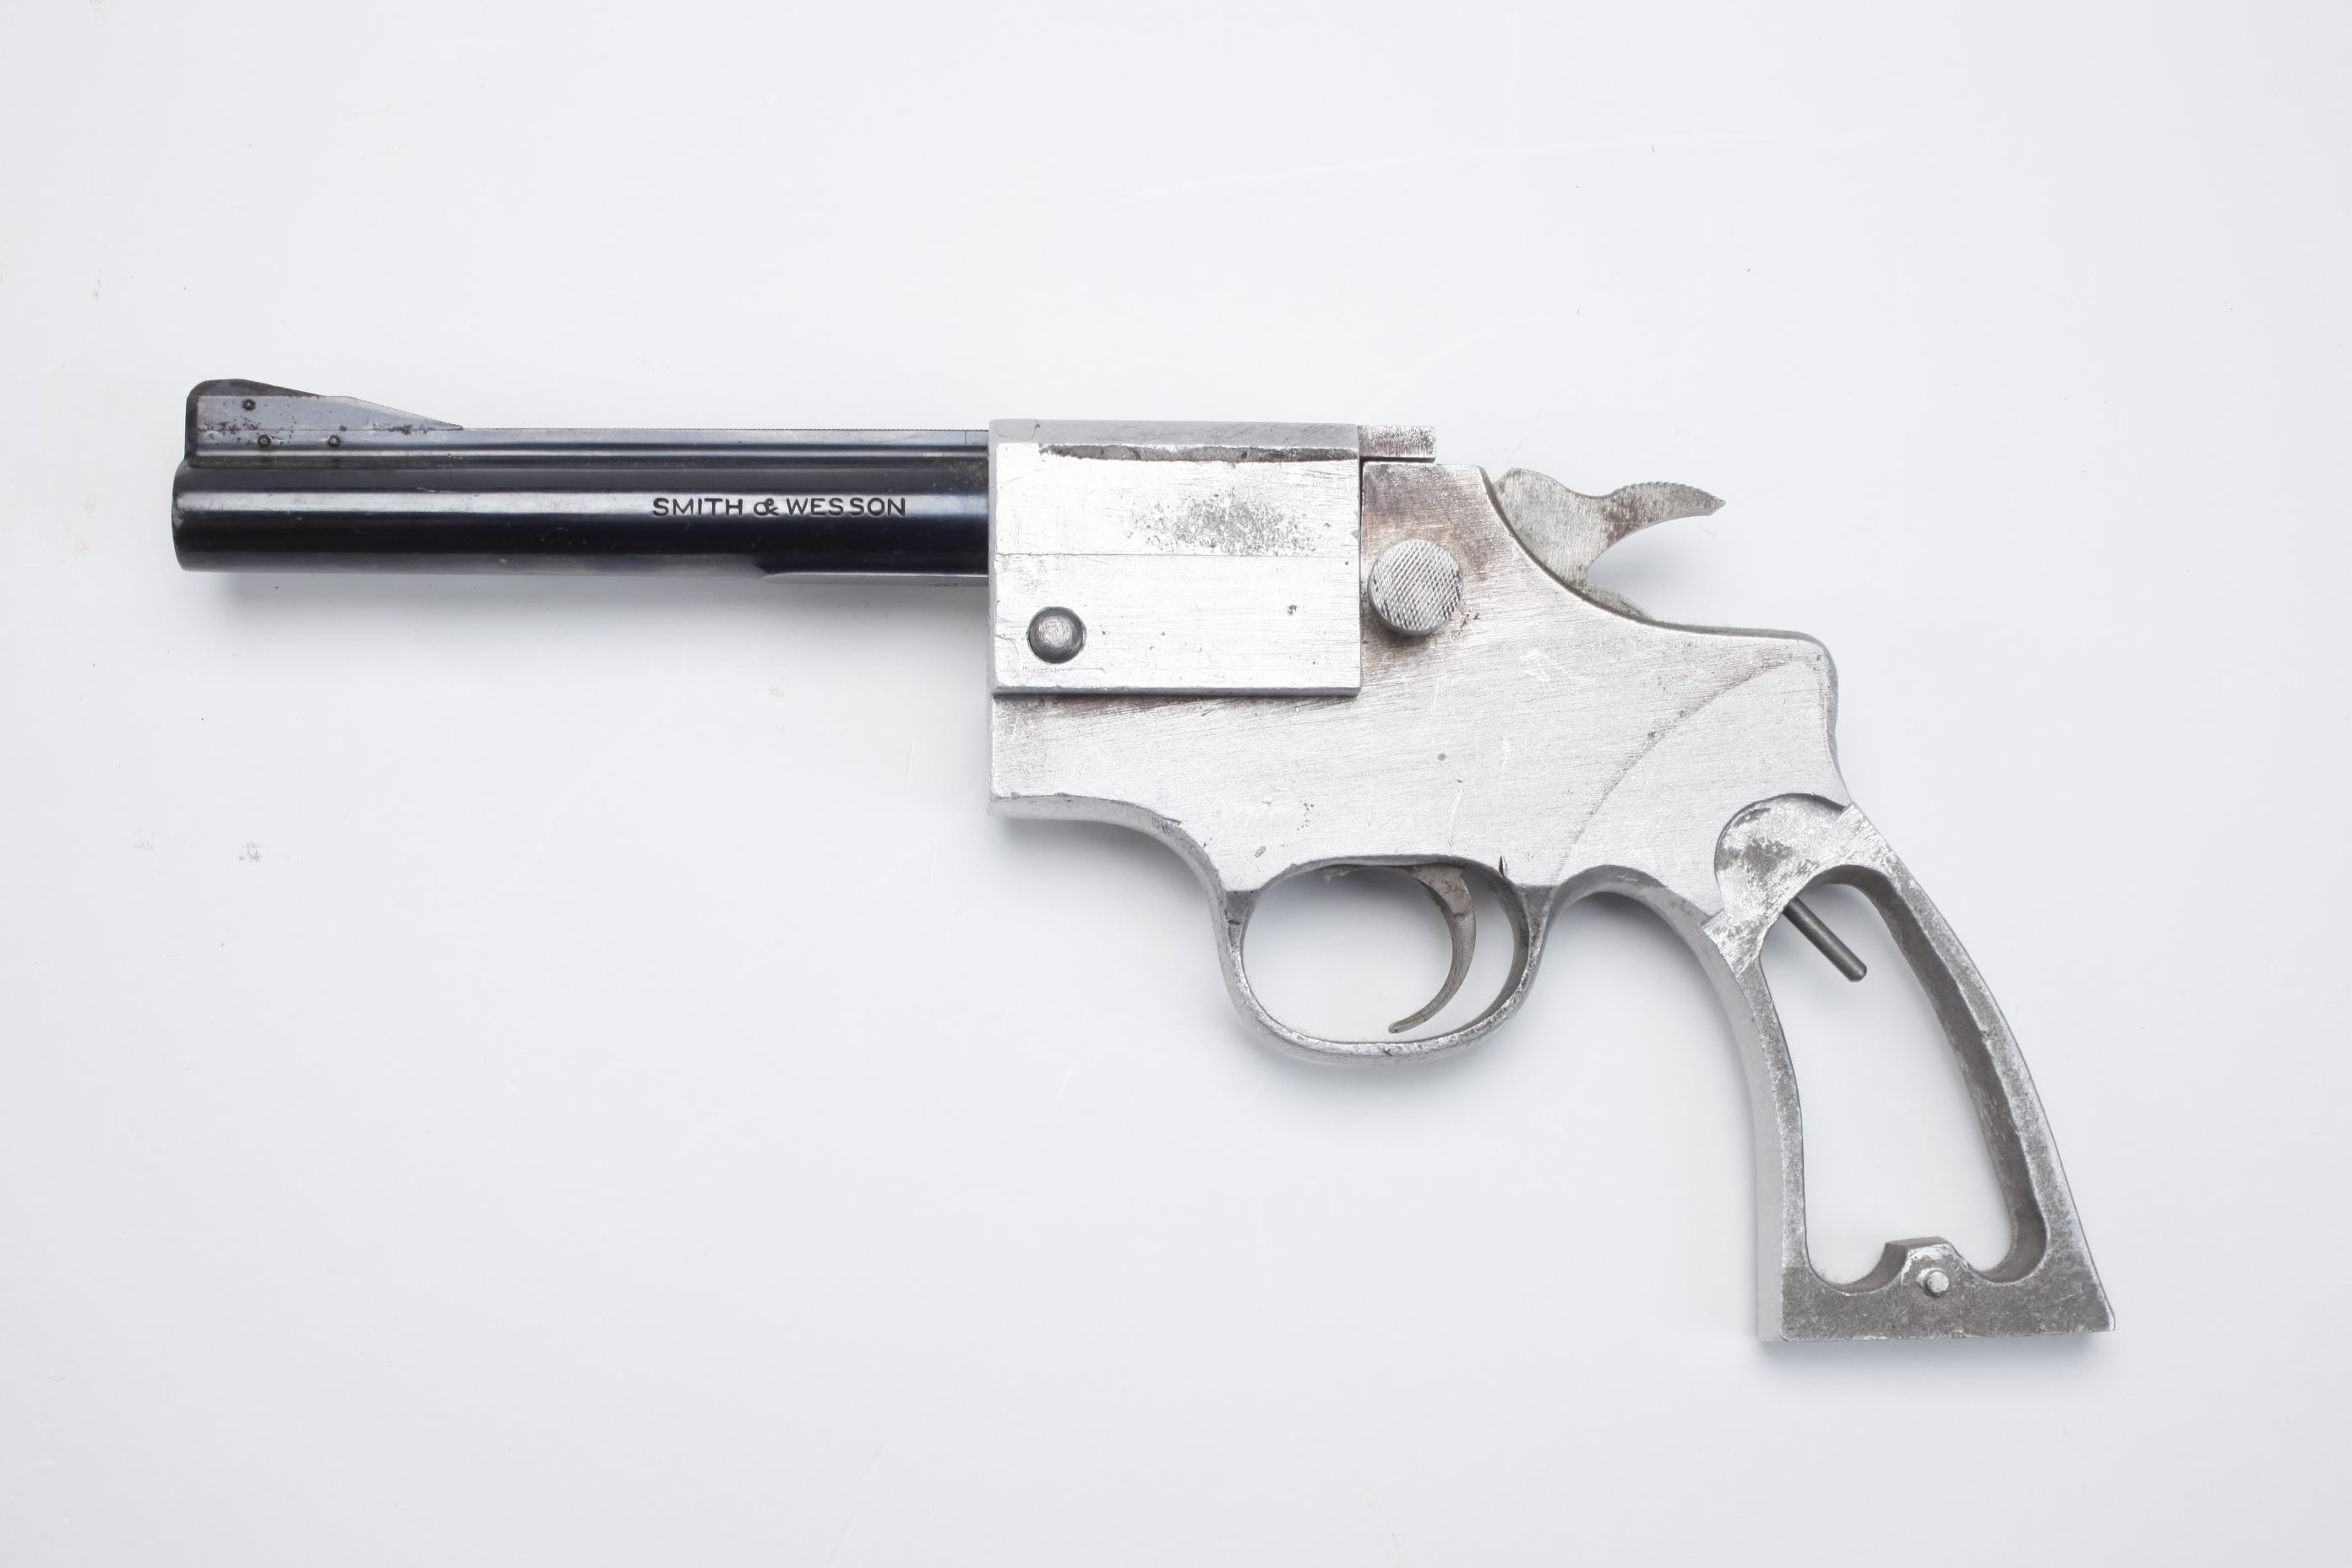 W. H. B. Smith Prototype WSP 200A Single Shot